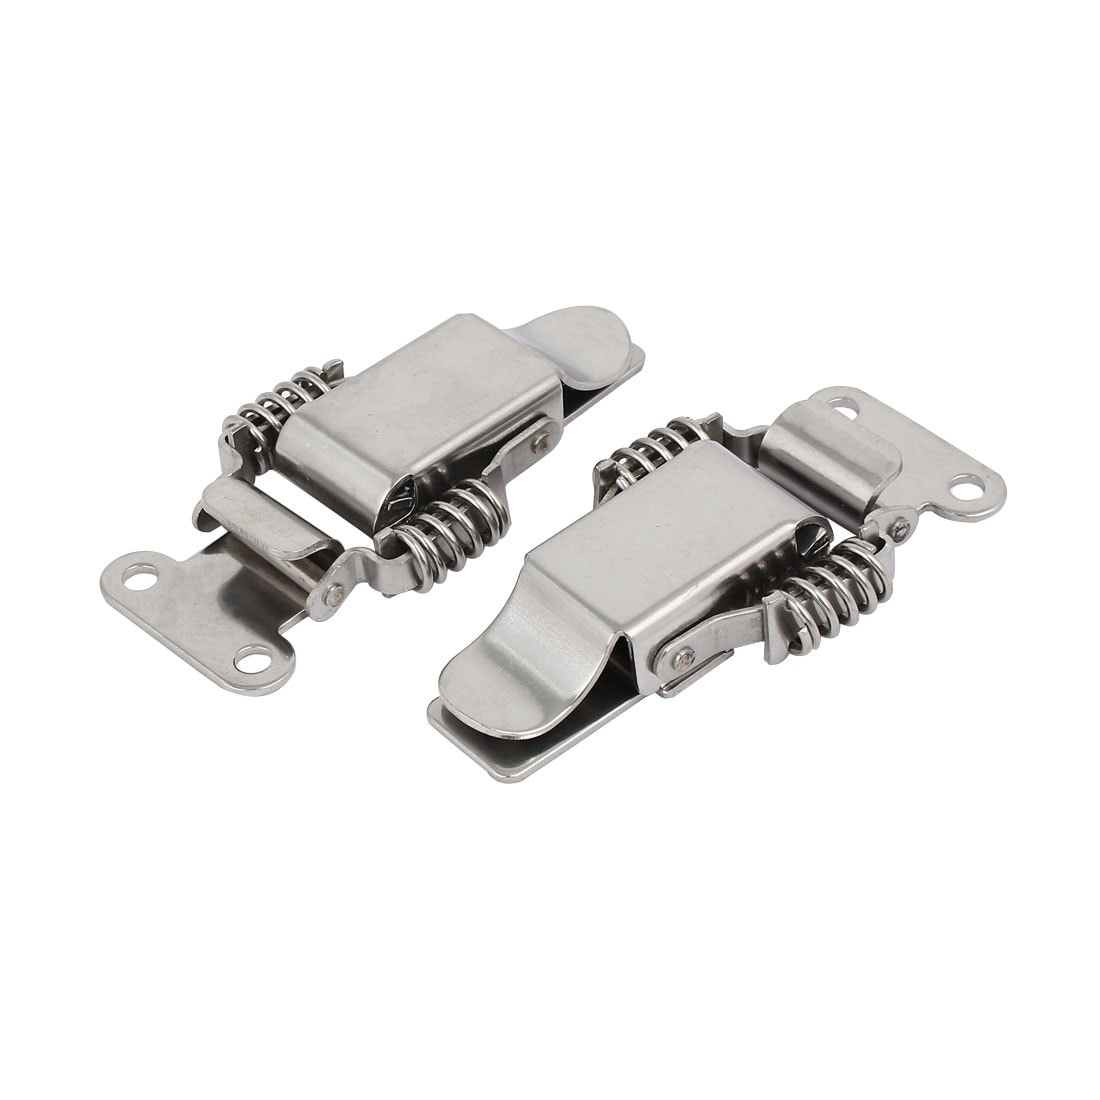 3.7-inch 304 Stainless Steel Straight Loop Catches Toggle Latches 2PCS